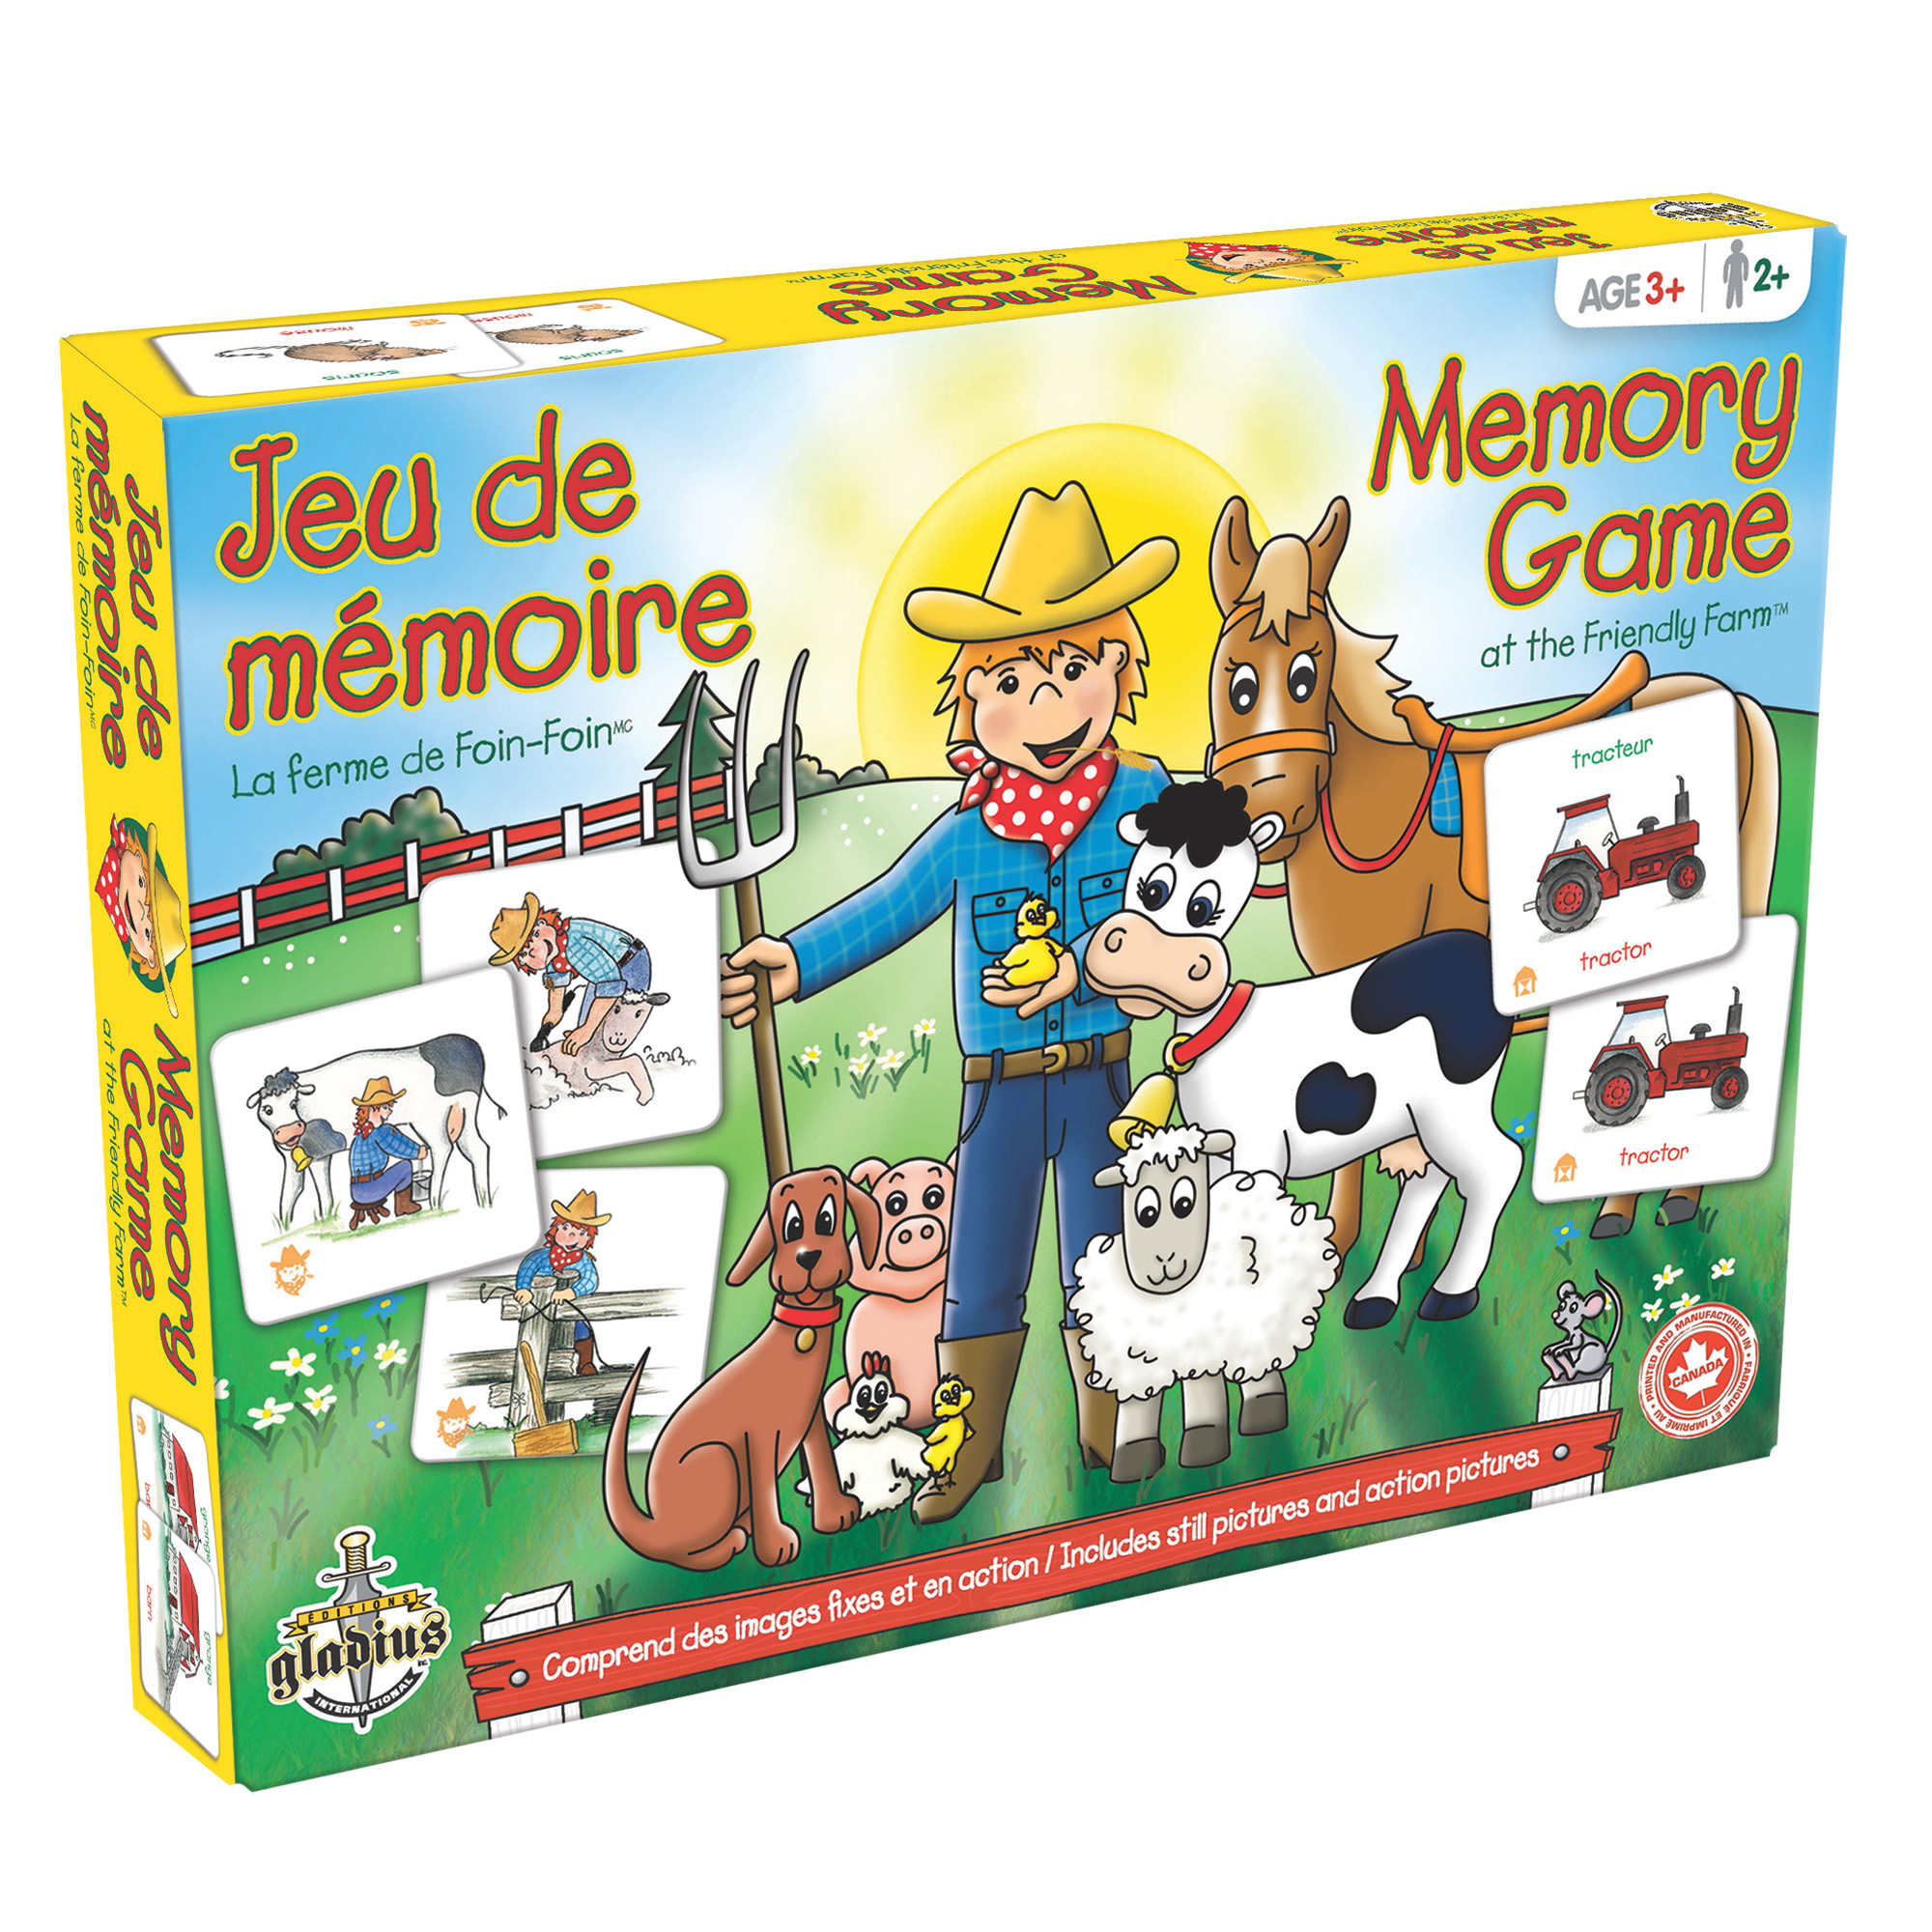 Jeu de mémoire - La Ferme de Foin-Foin boîte / Memory Game - The Friendly Farm box